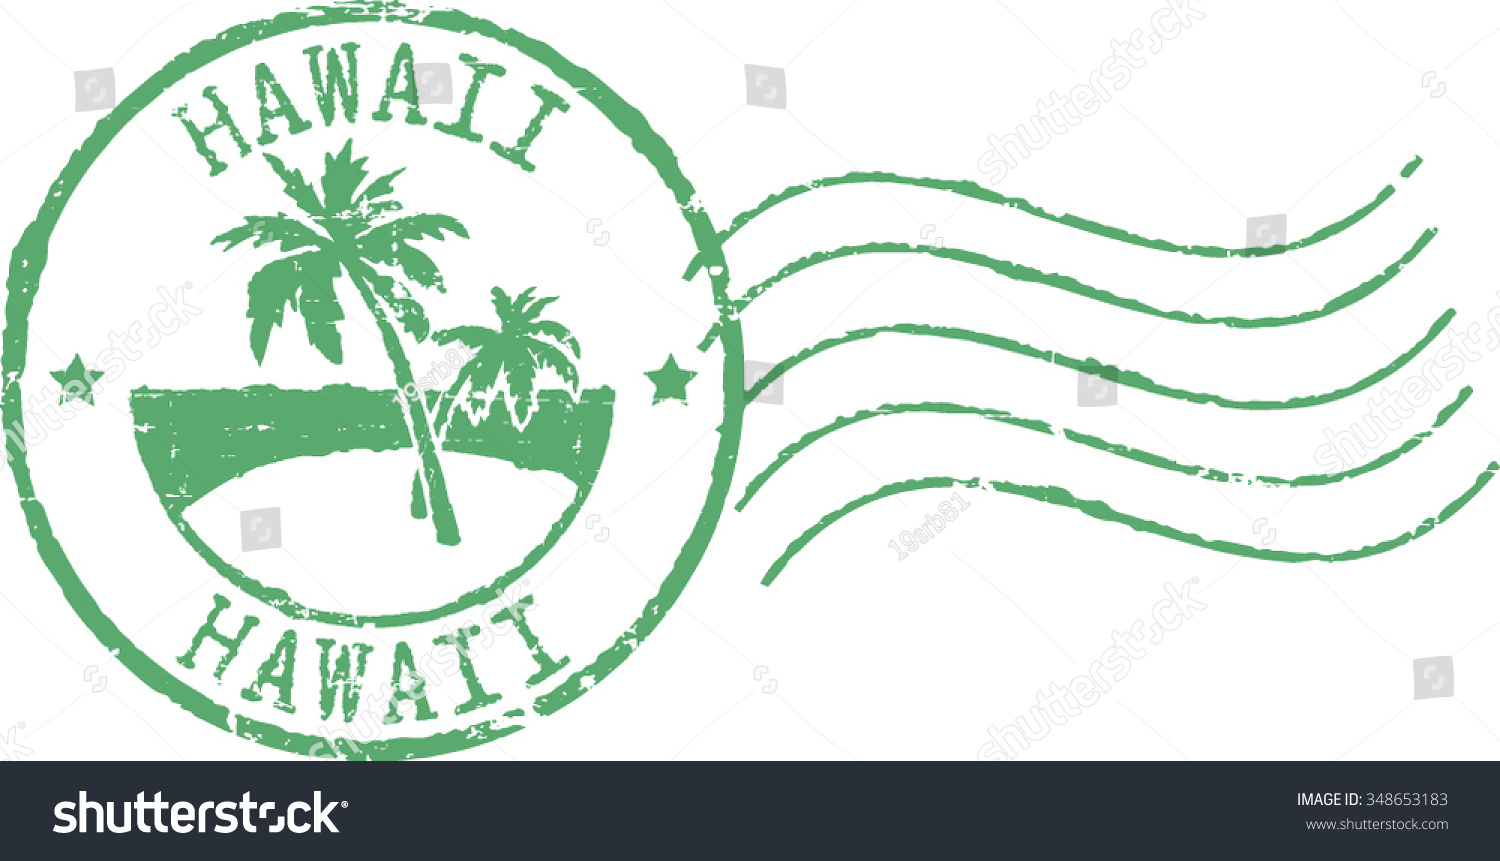 Green Postal Grunge Stamp Hawaii